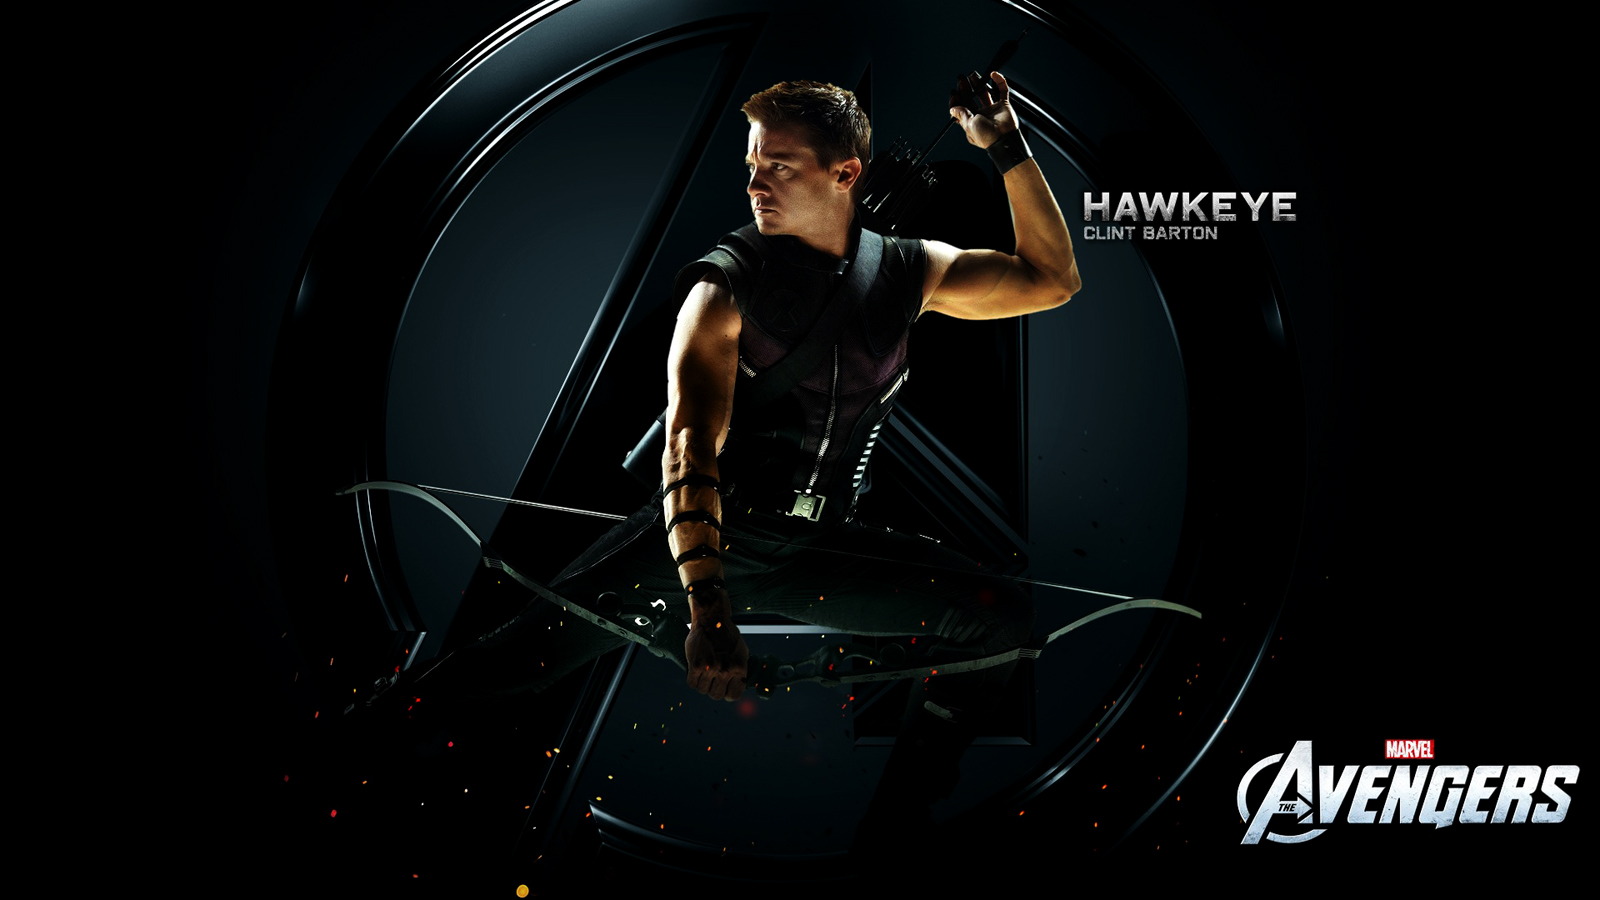 The Avengers Hawkeye Clint Barton HD Wallpapers HQ